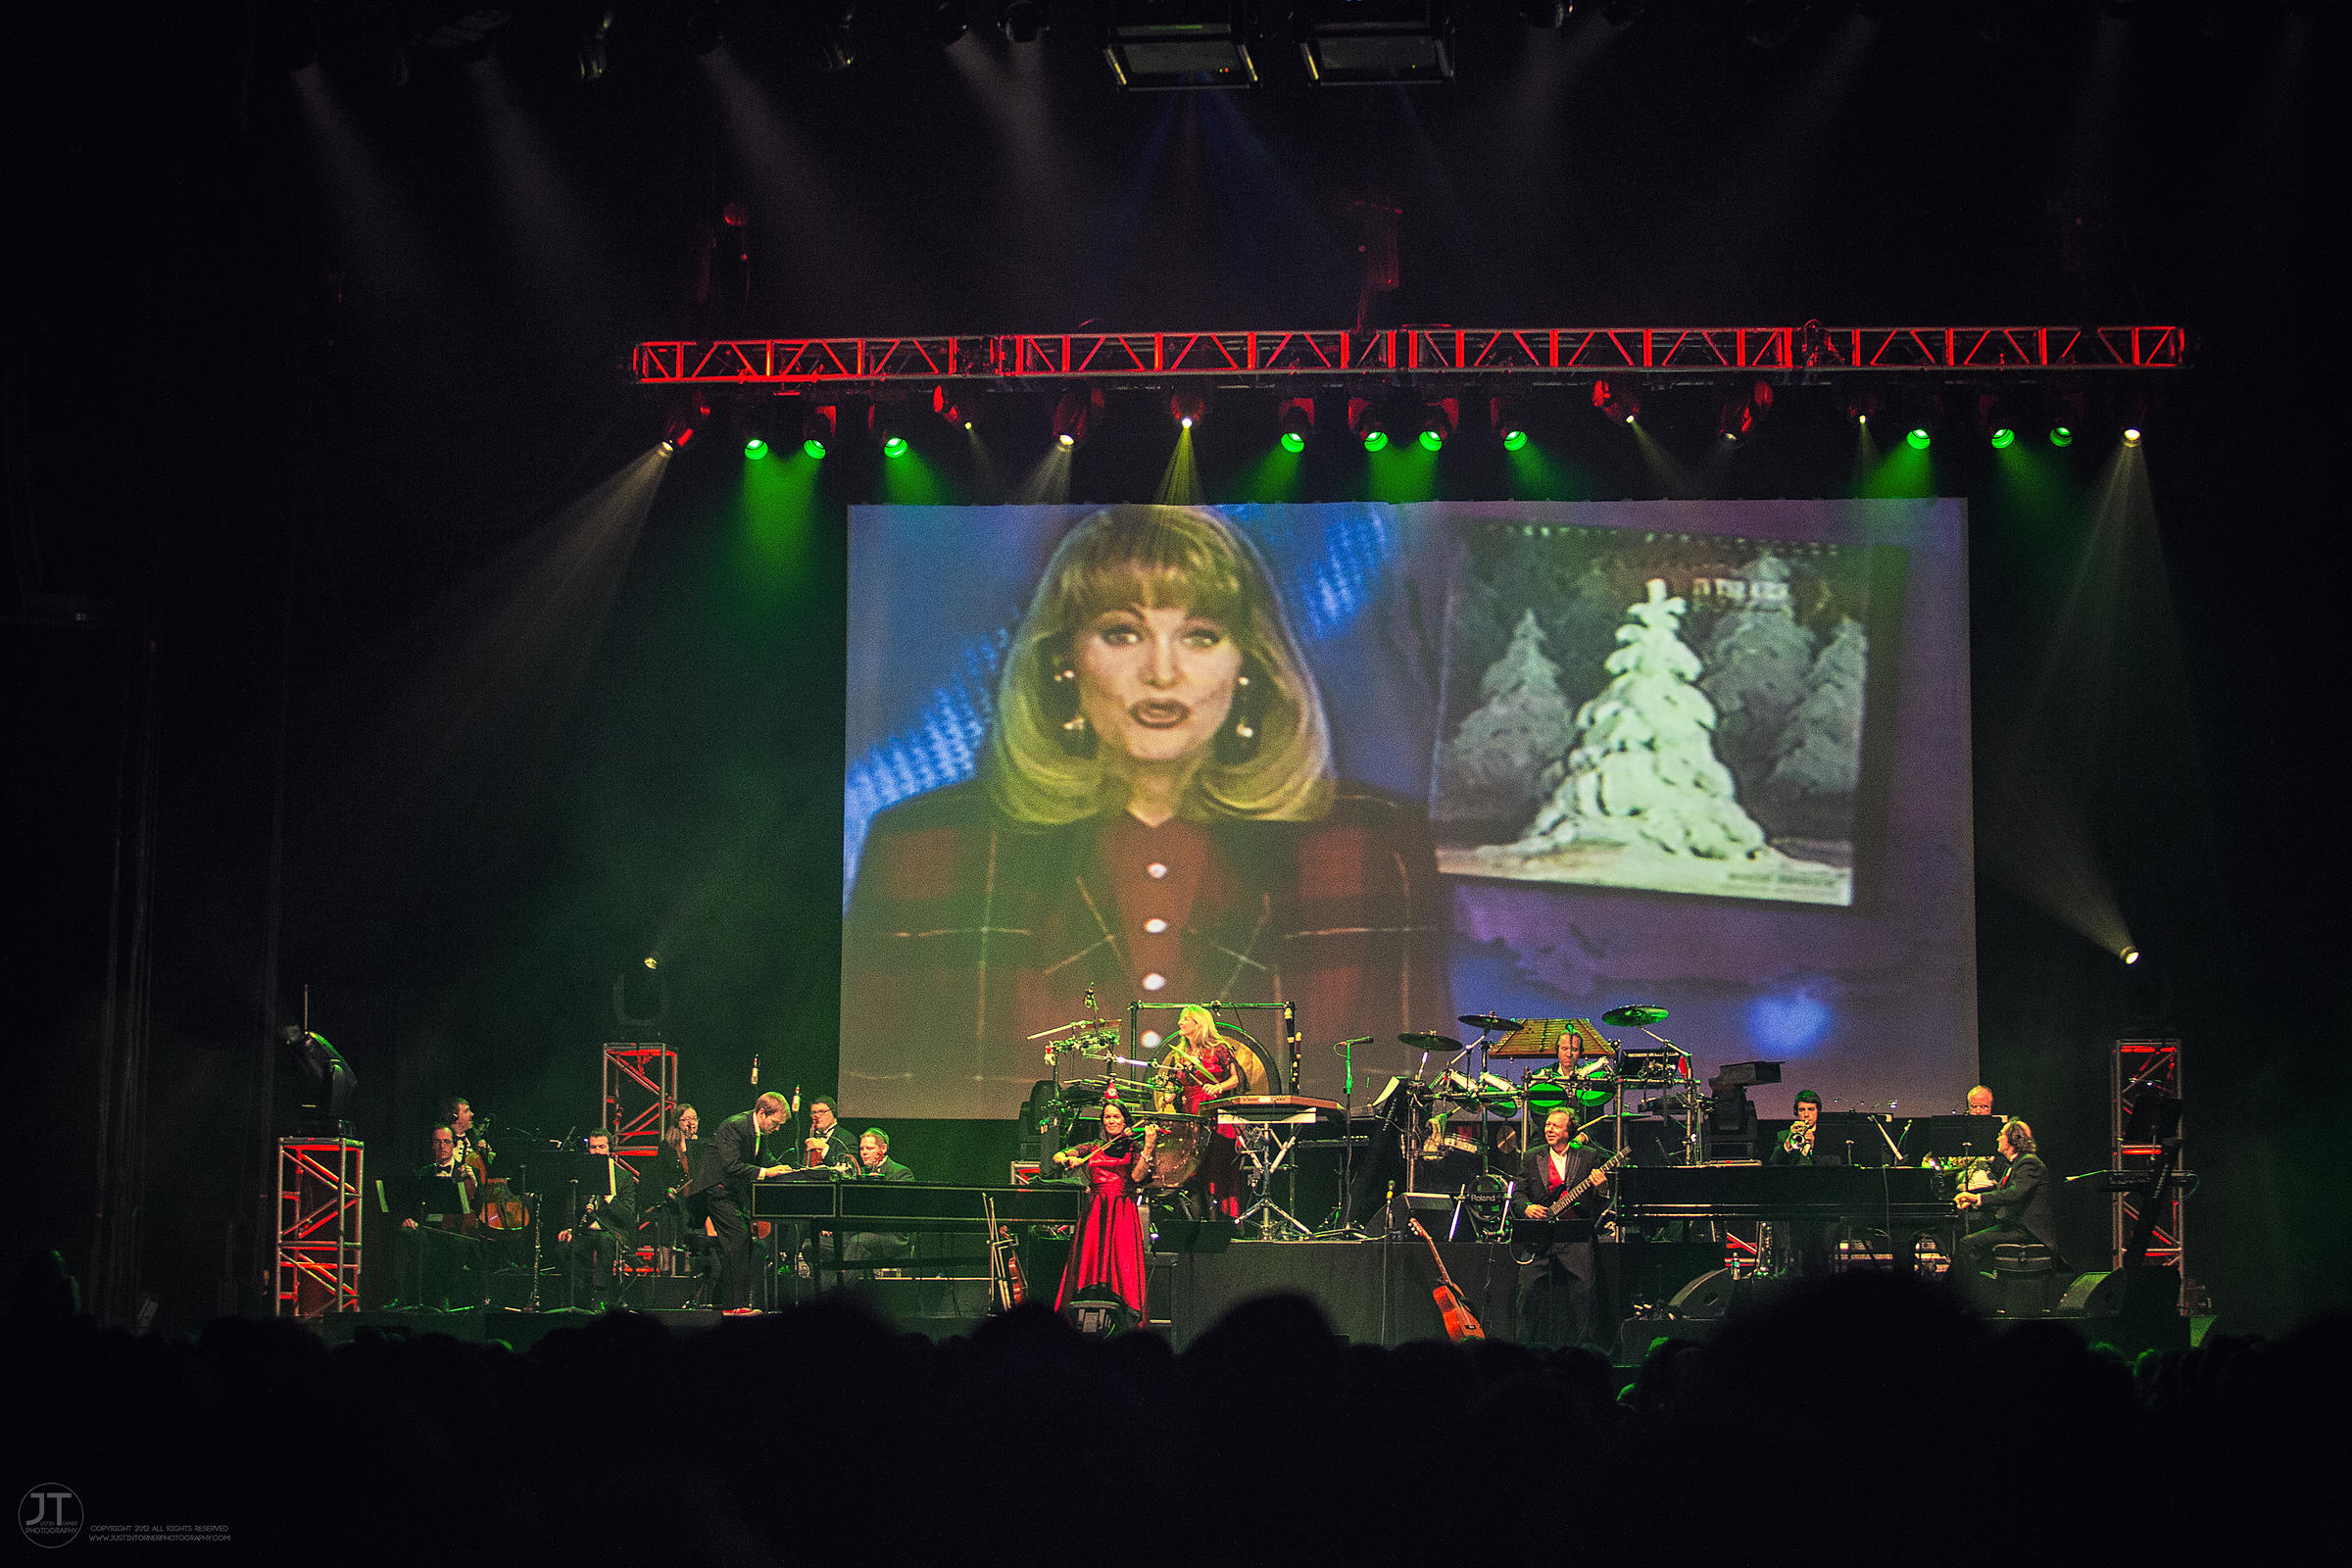 Hoopla - Manheim Steamroller, US Cellular Center, December 6, 2014